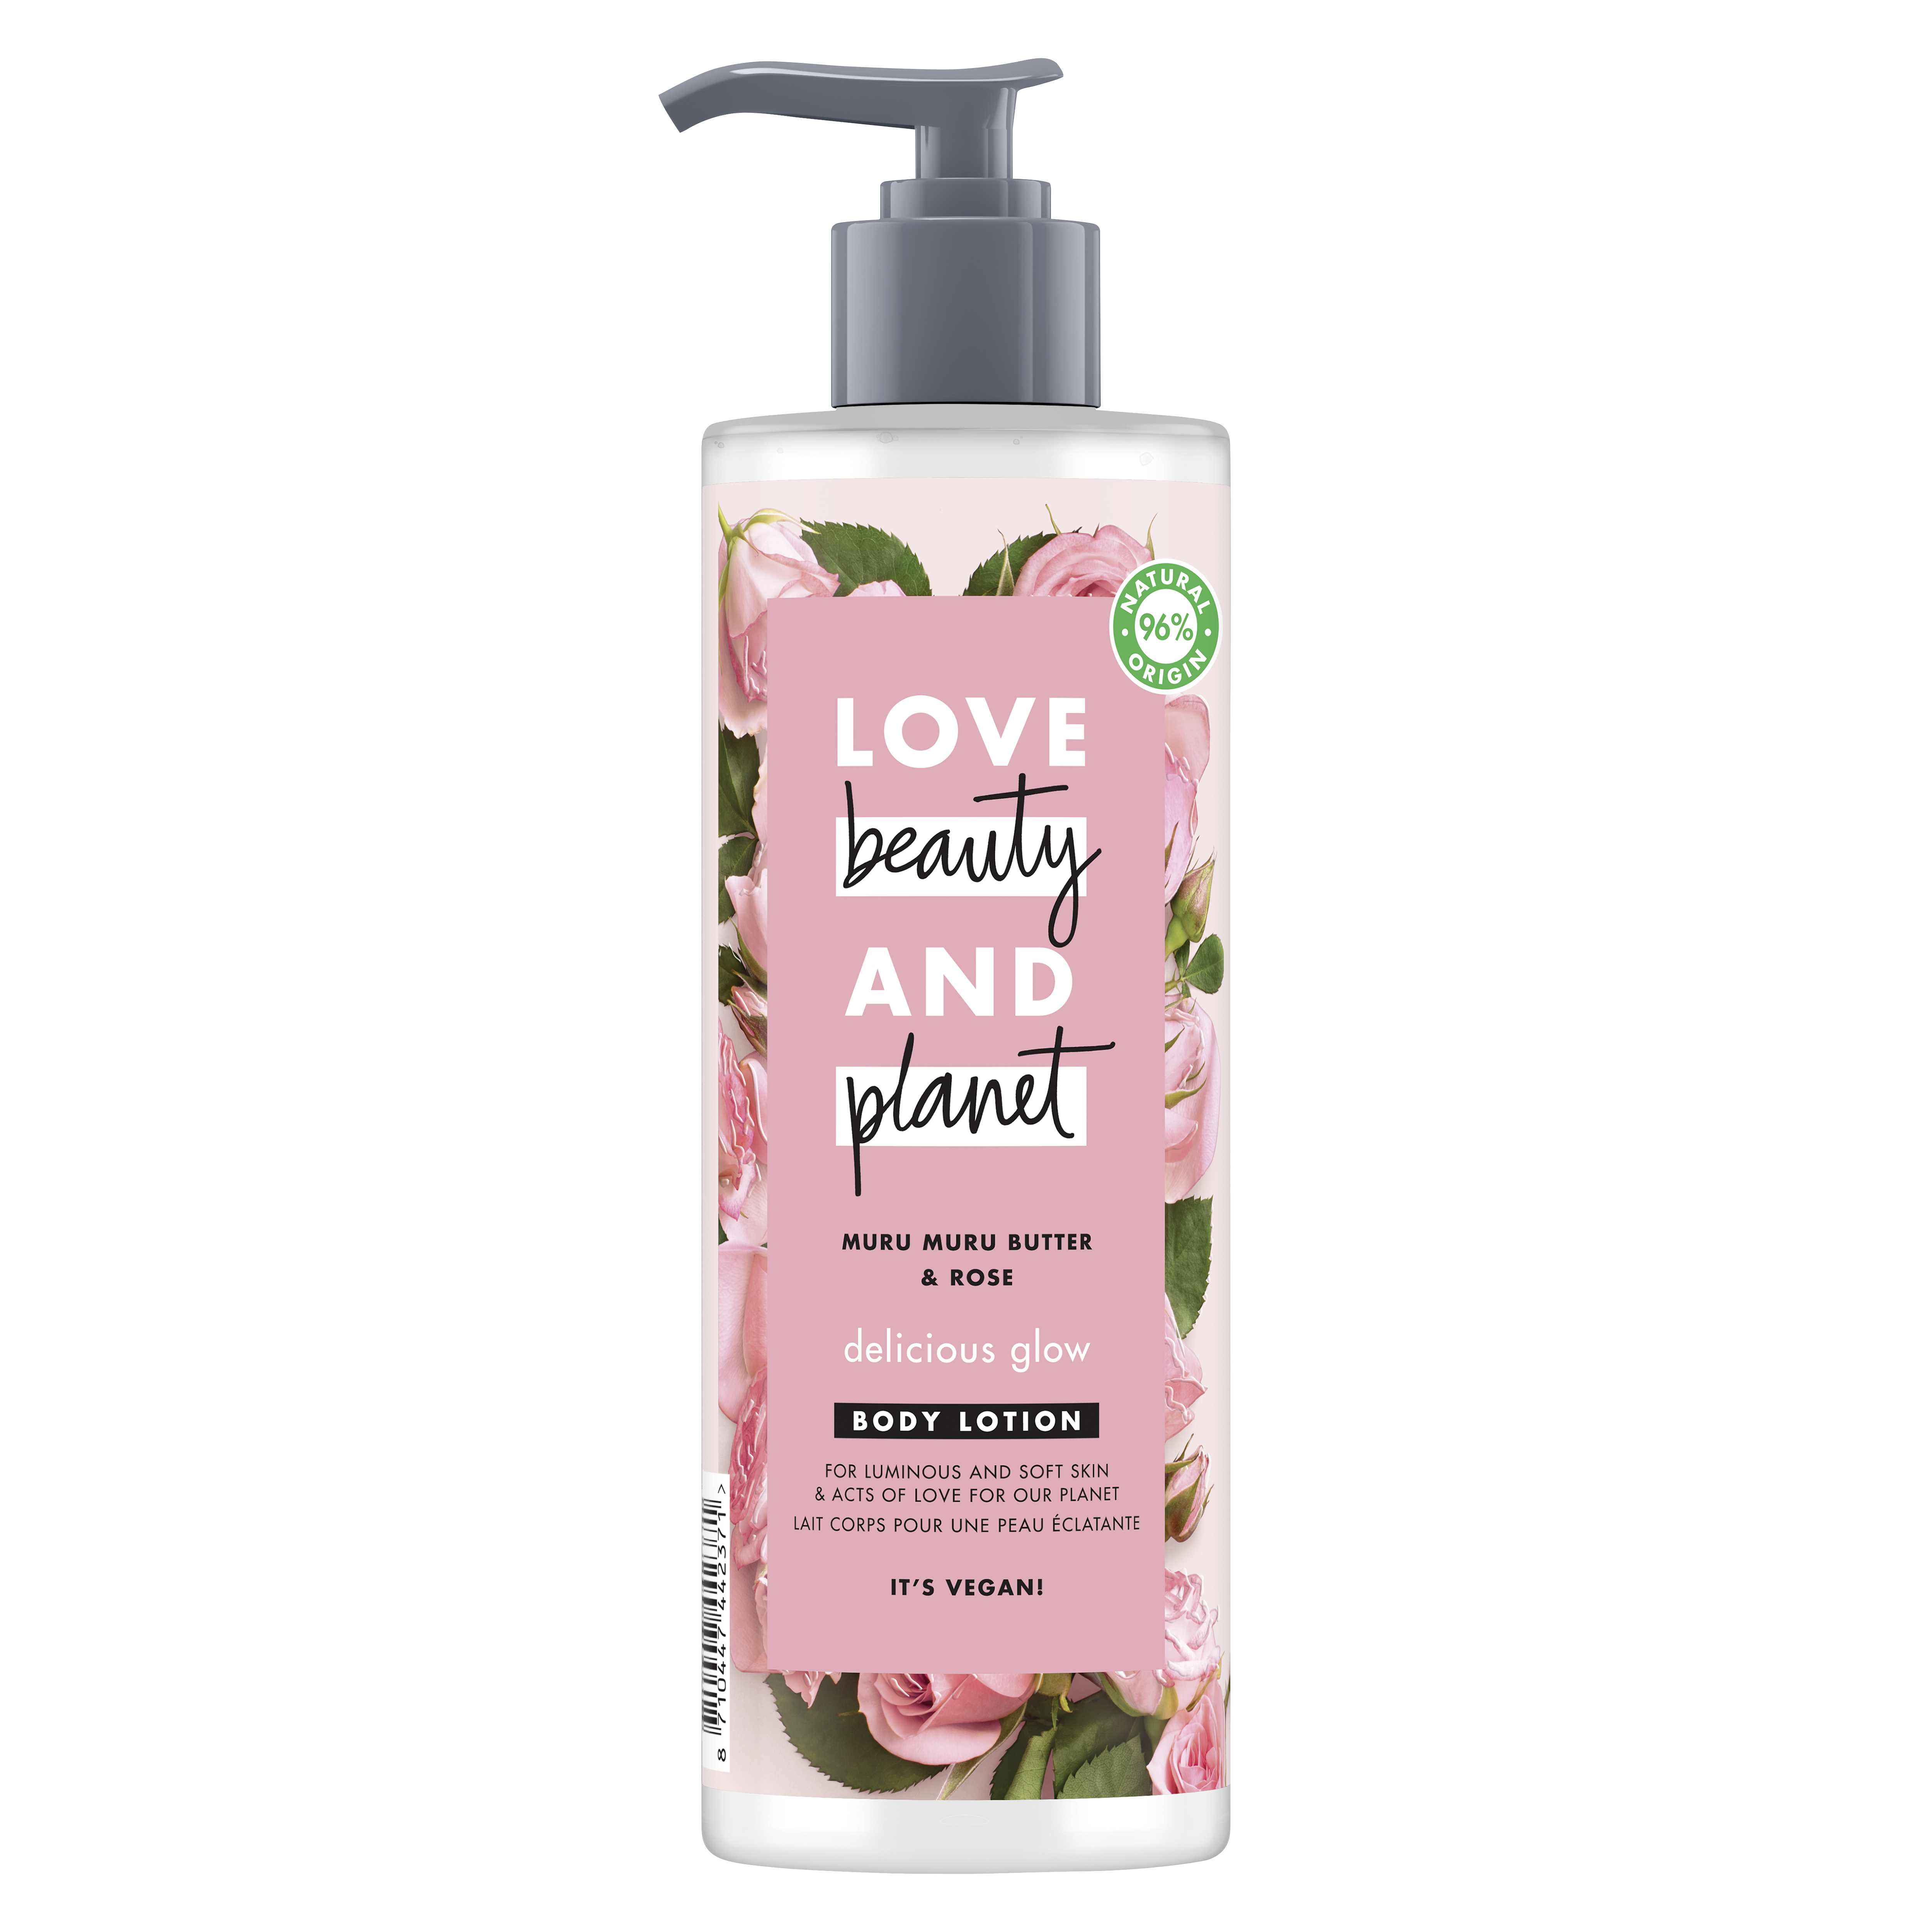 body lotion muru muru butter rose 1